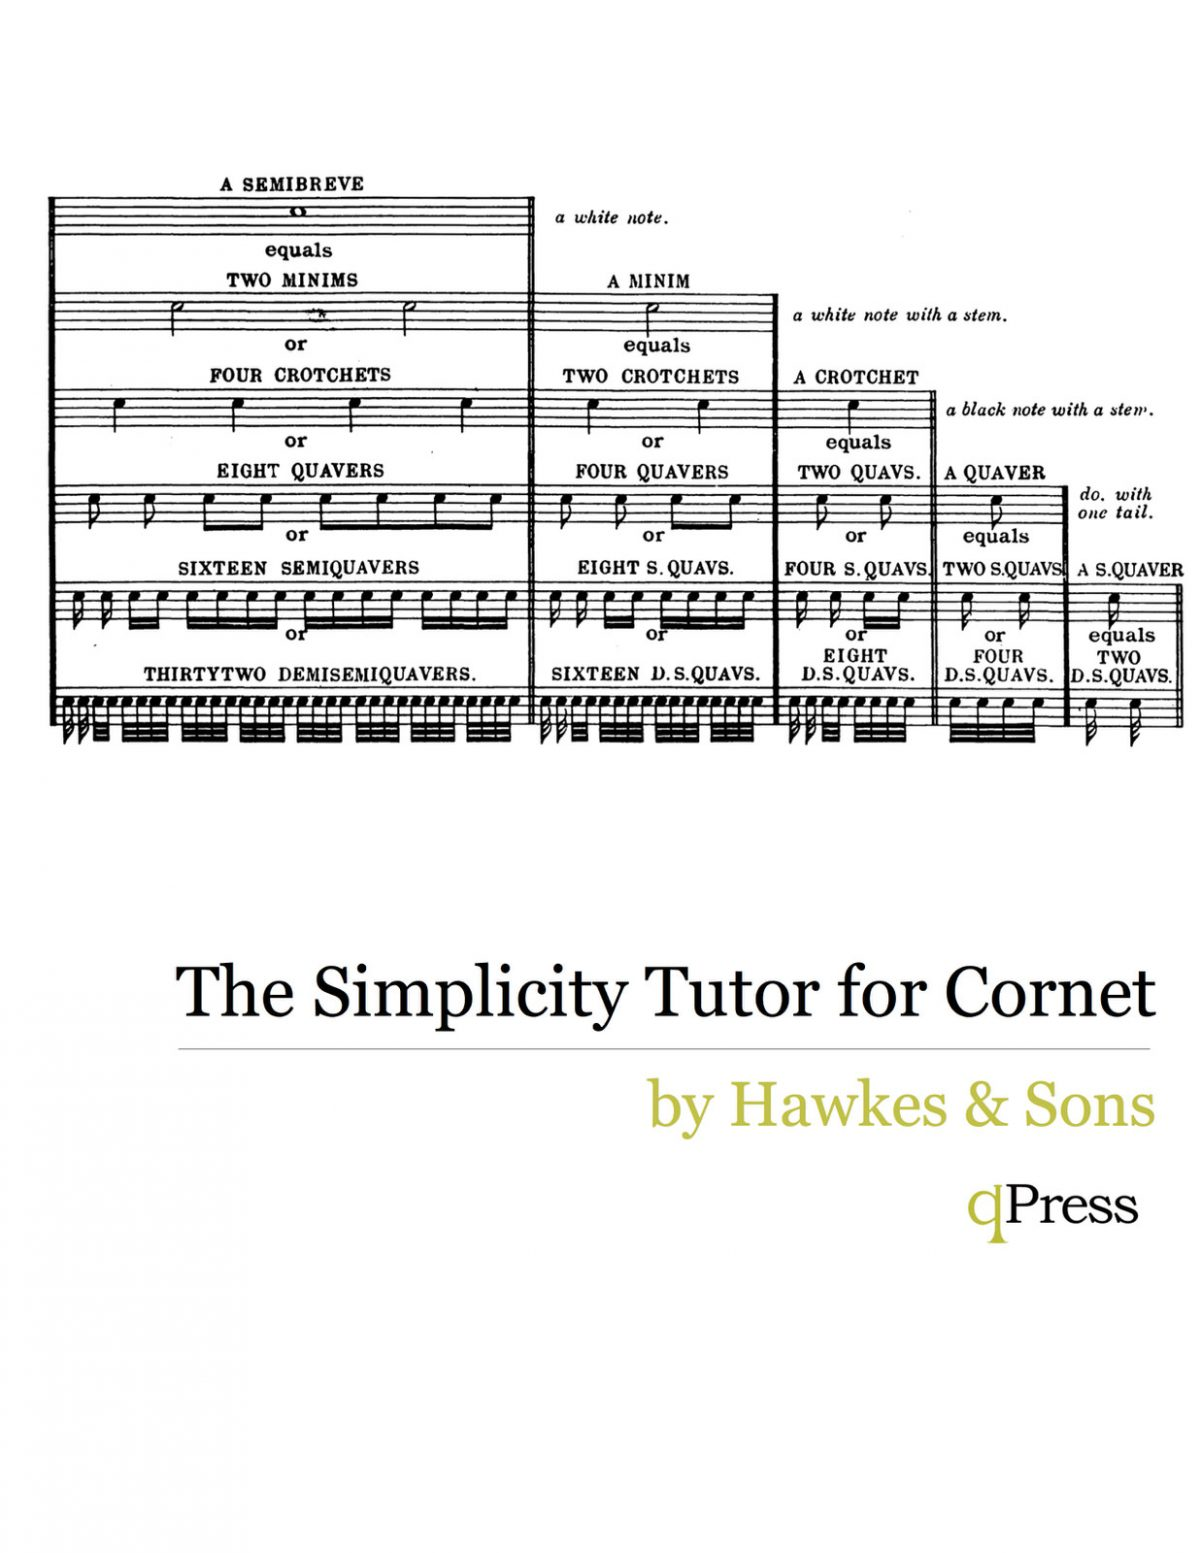 Hawkes and Son's, The Simplicity Tutor for Cornet